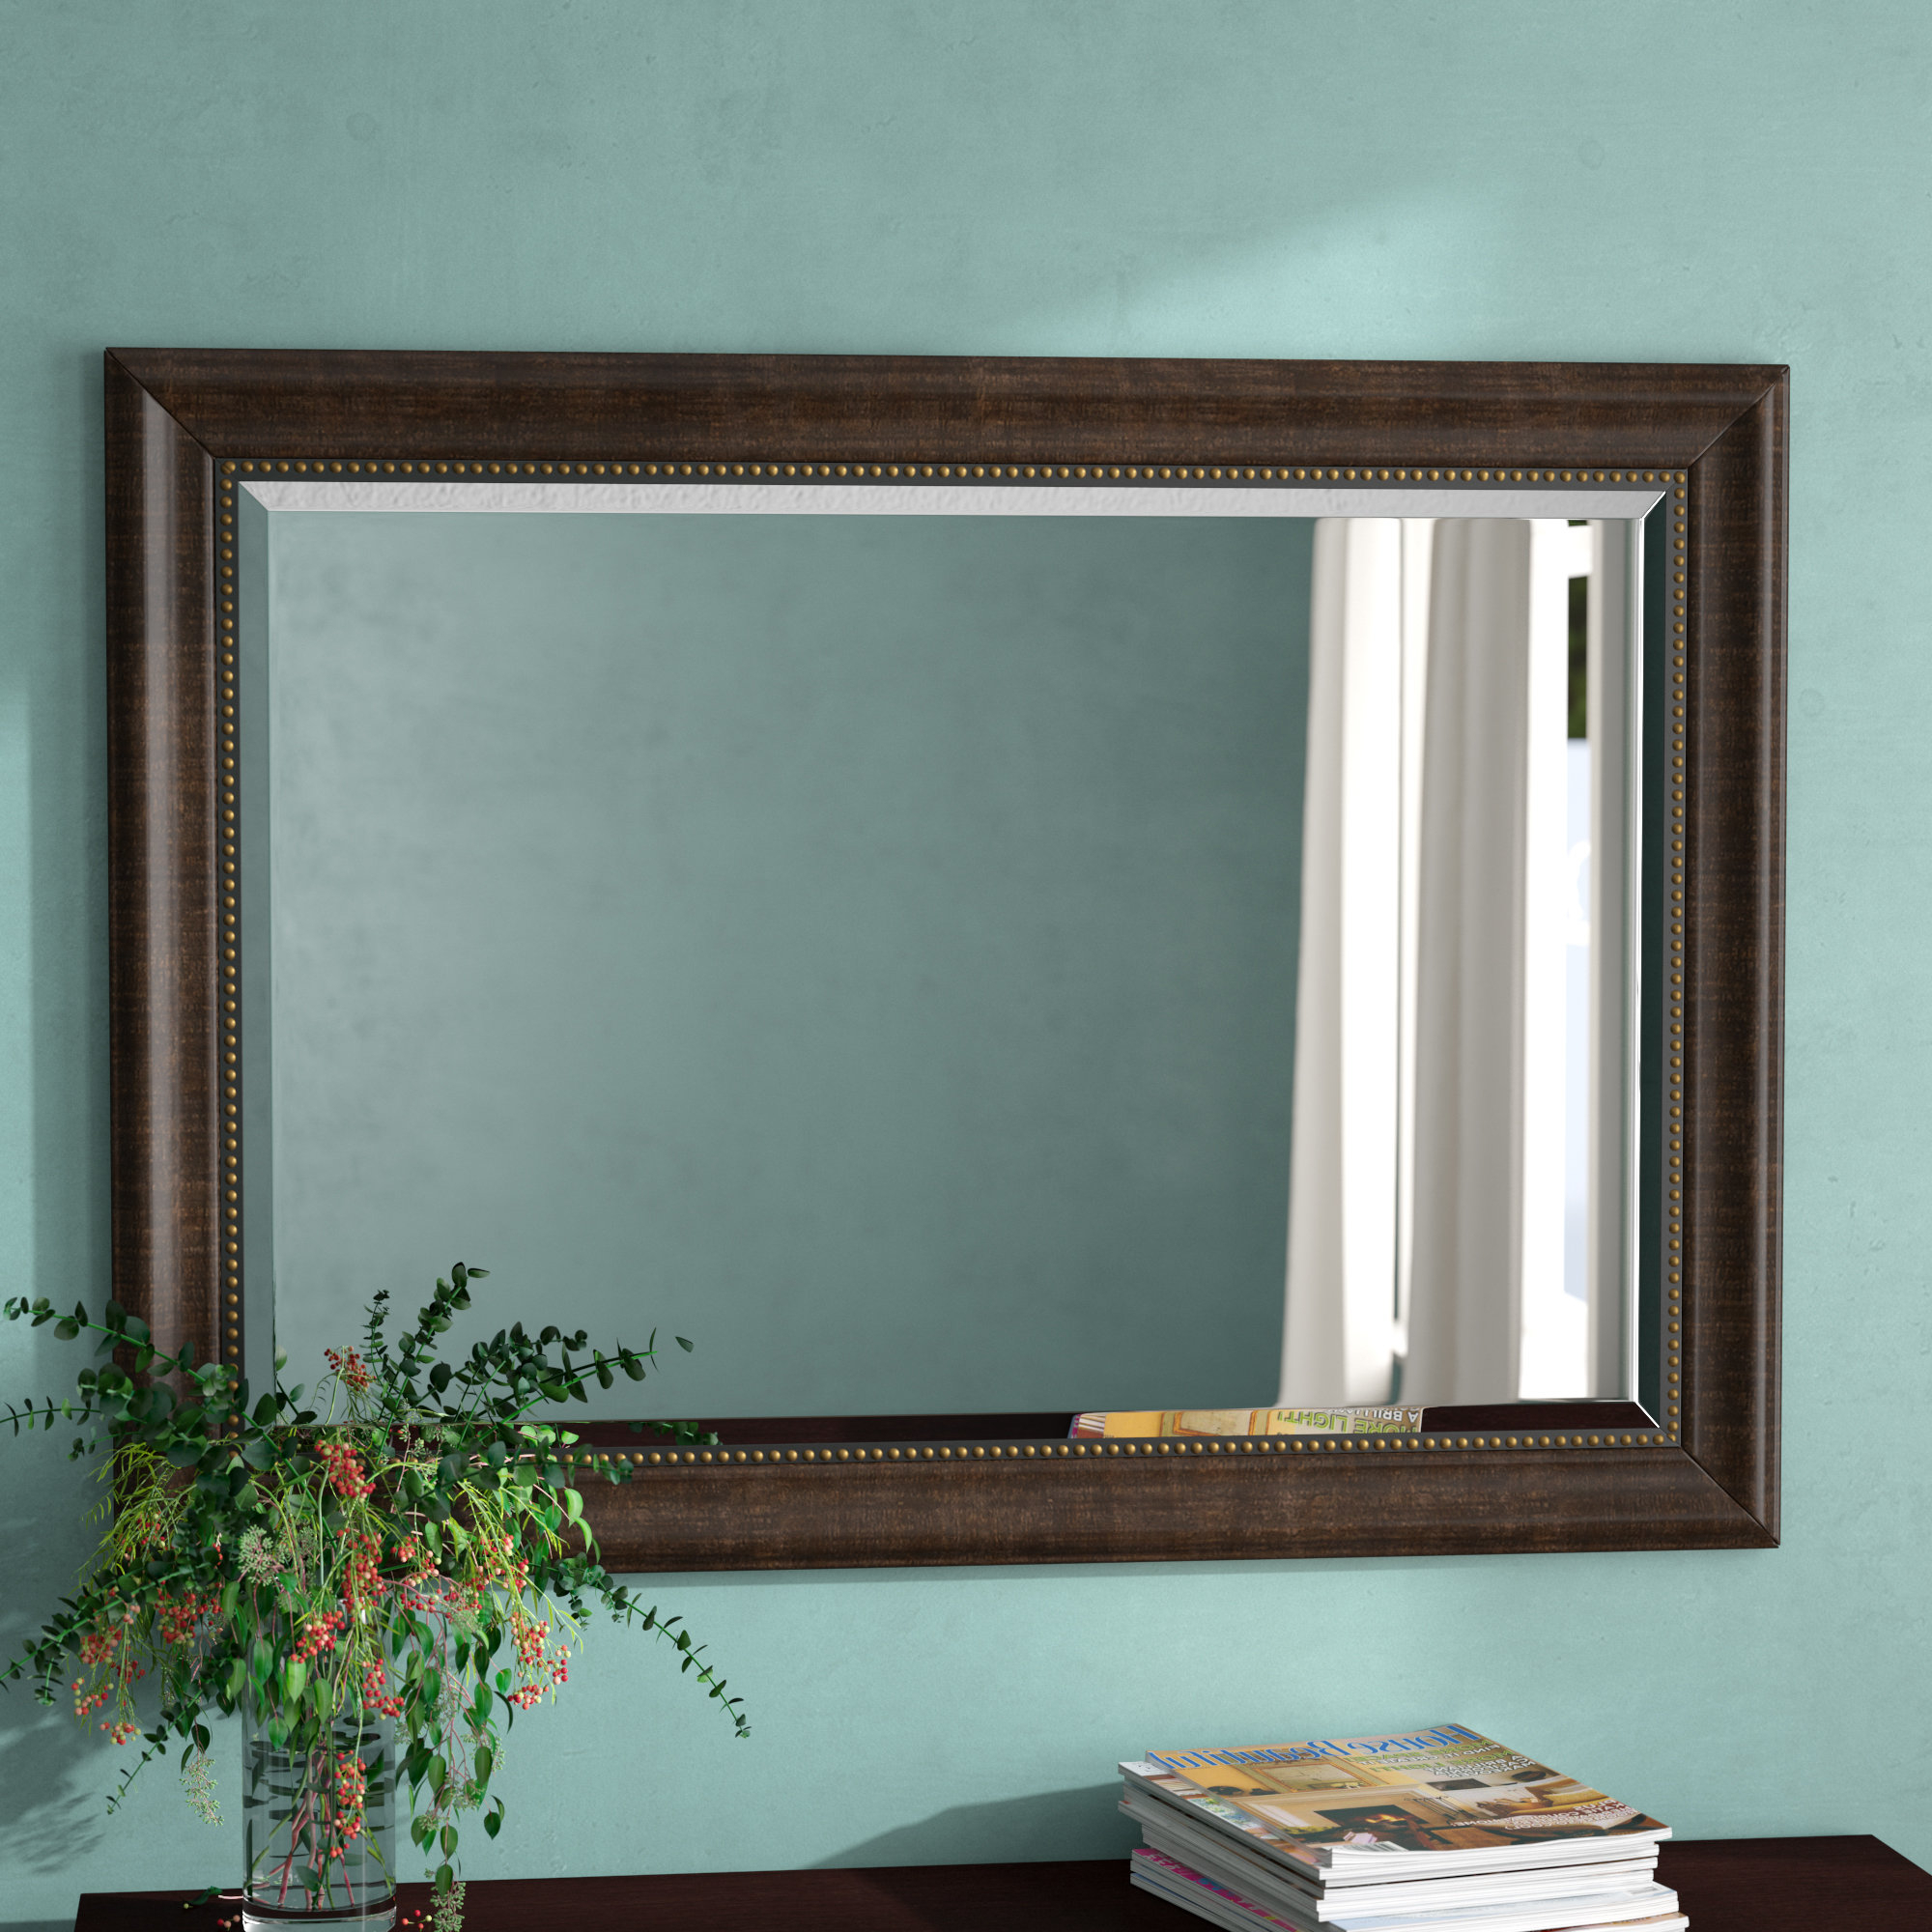 Rectangle Plastic Beveled Wall Mirrors Pertaining To Current Vassallo Beaded Bronze Beveled Wall Mirror (View 20 of 20)